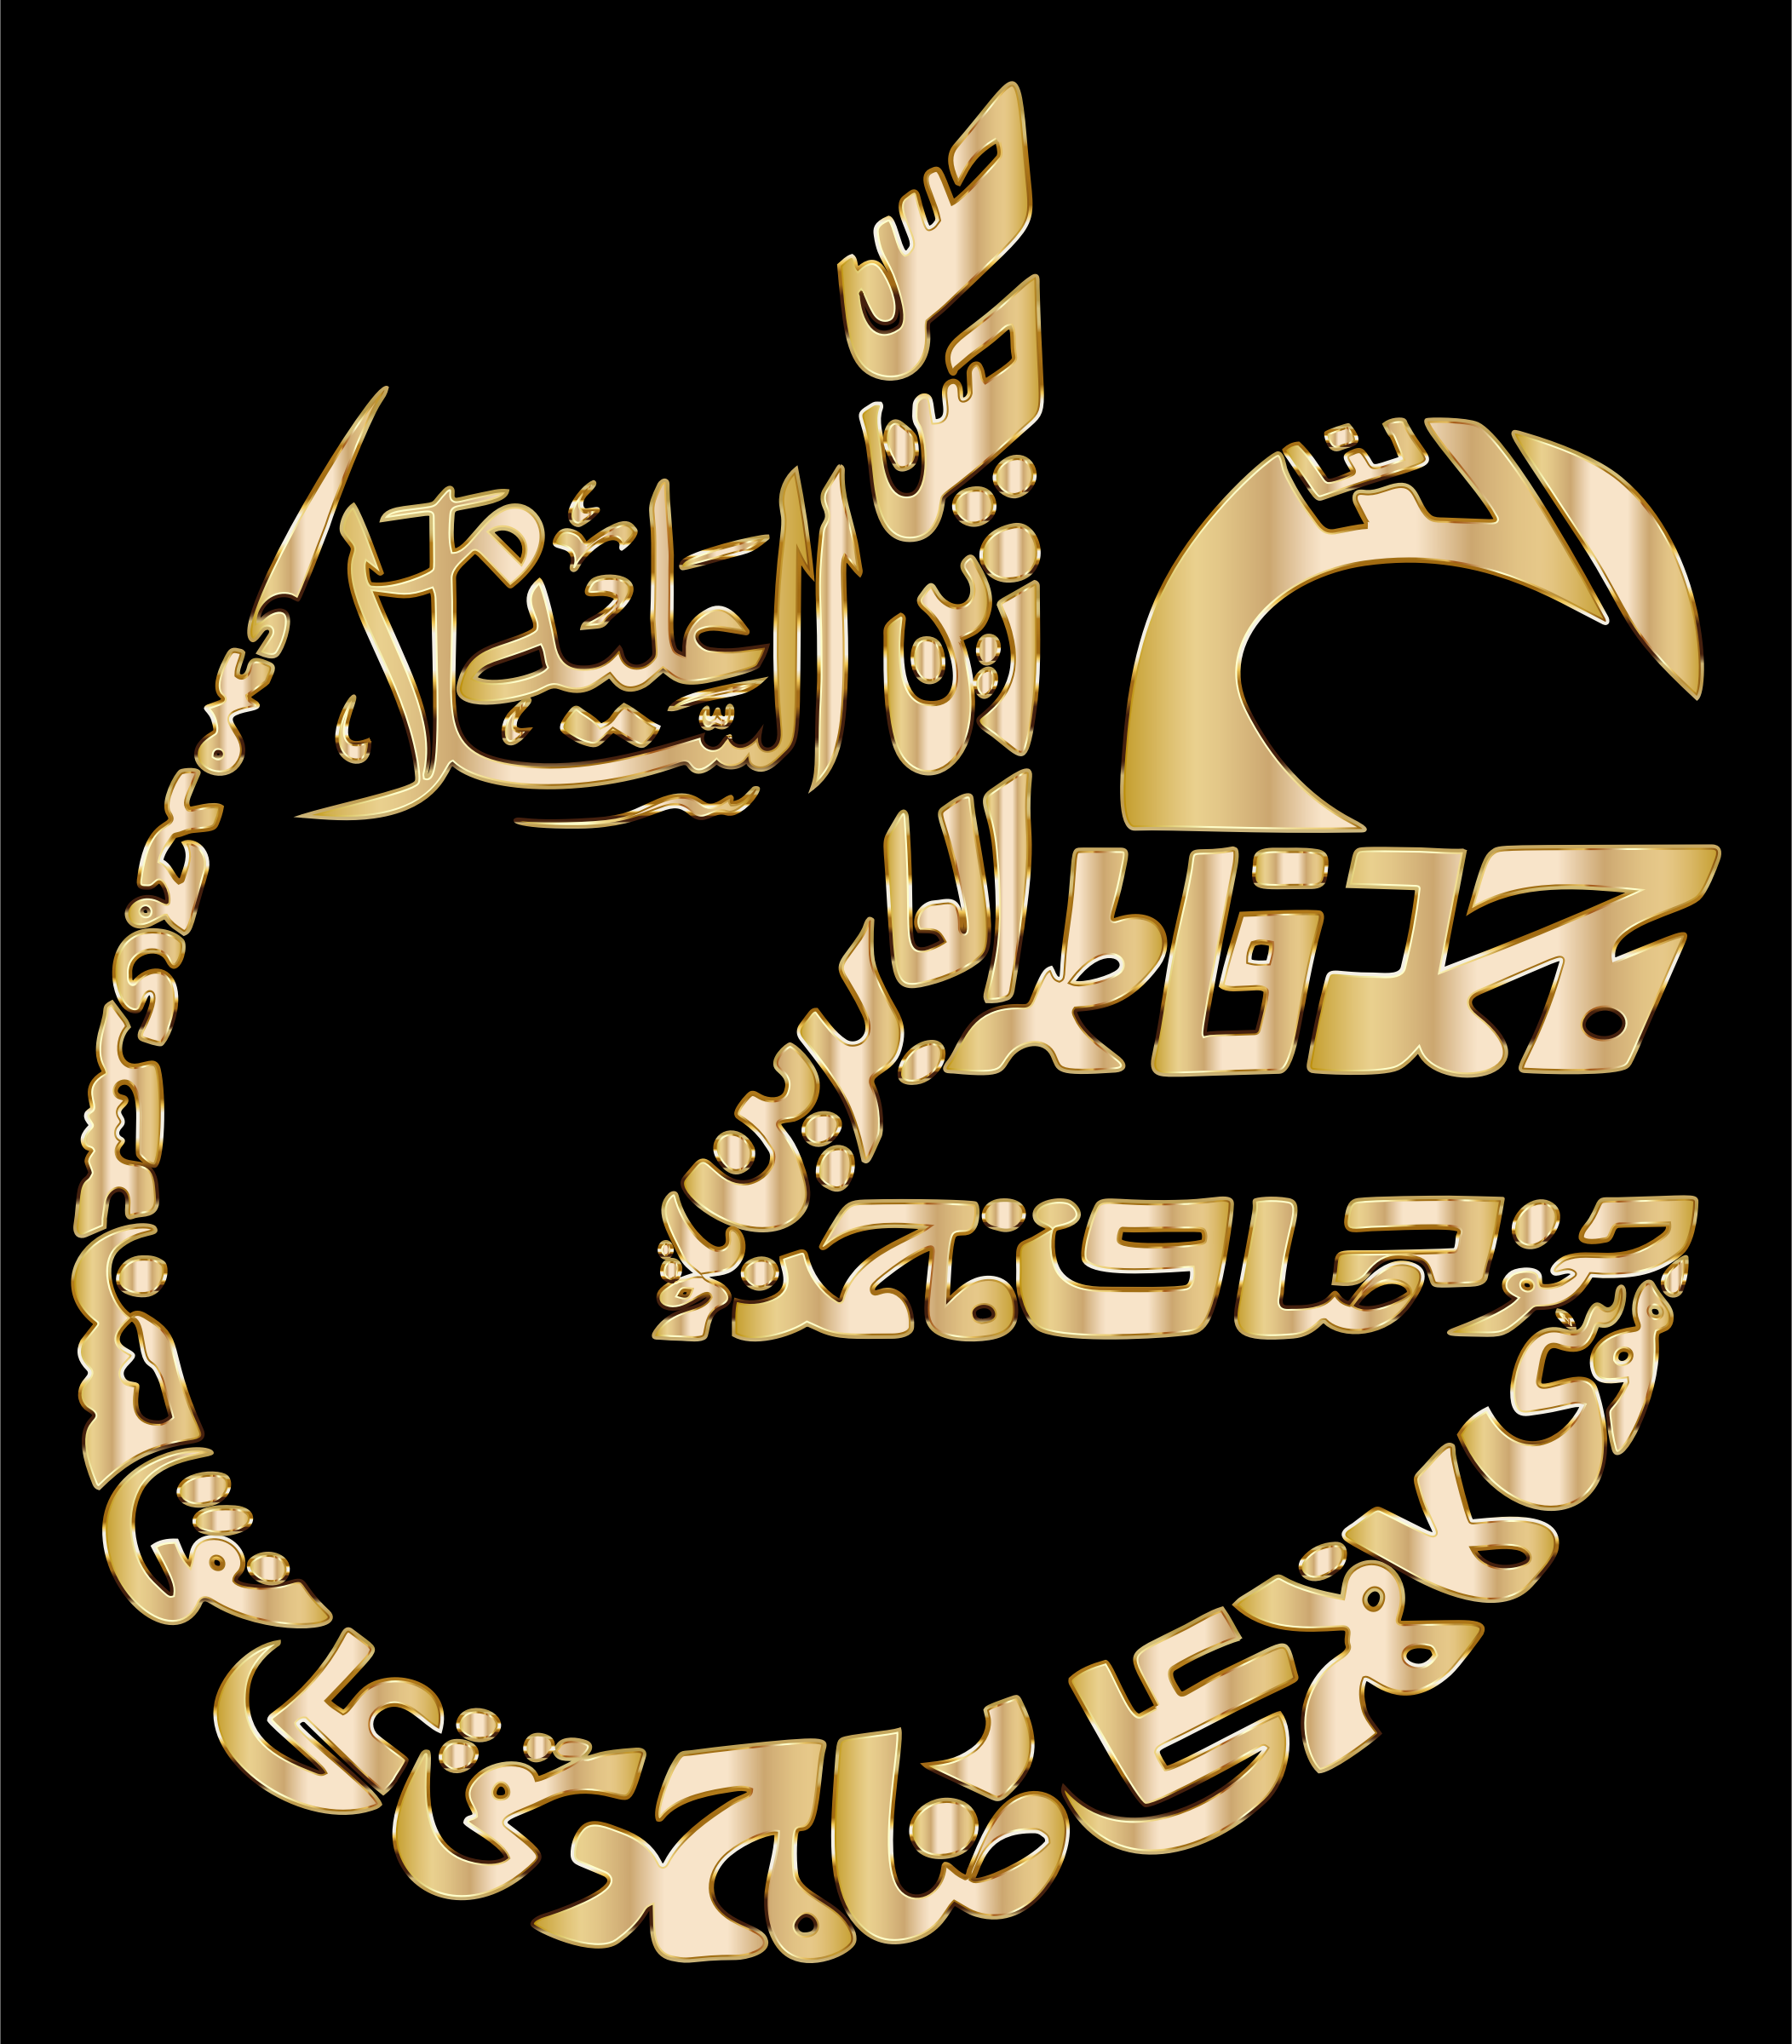 Gold Vintage Arabic Calligraphy by GDJ